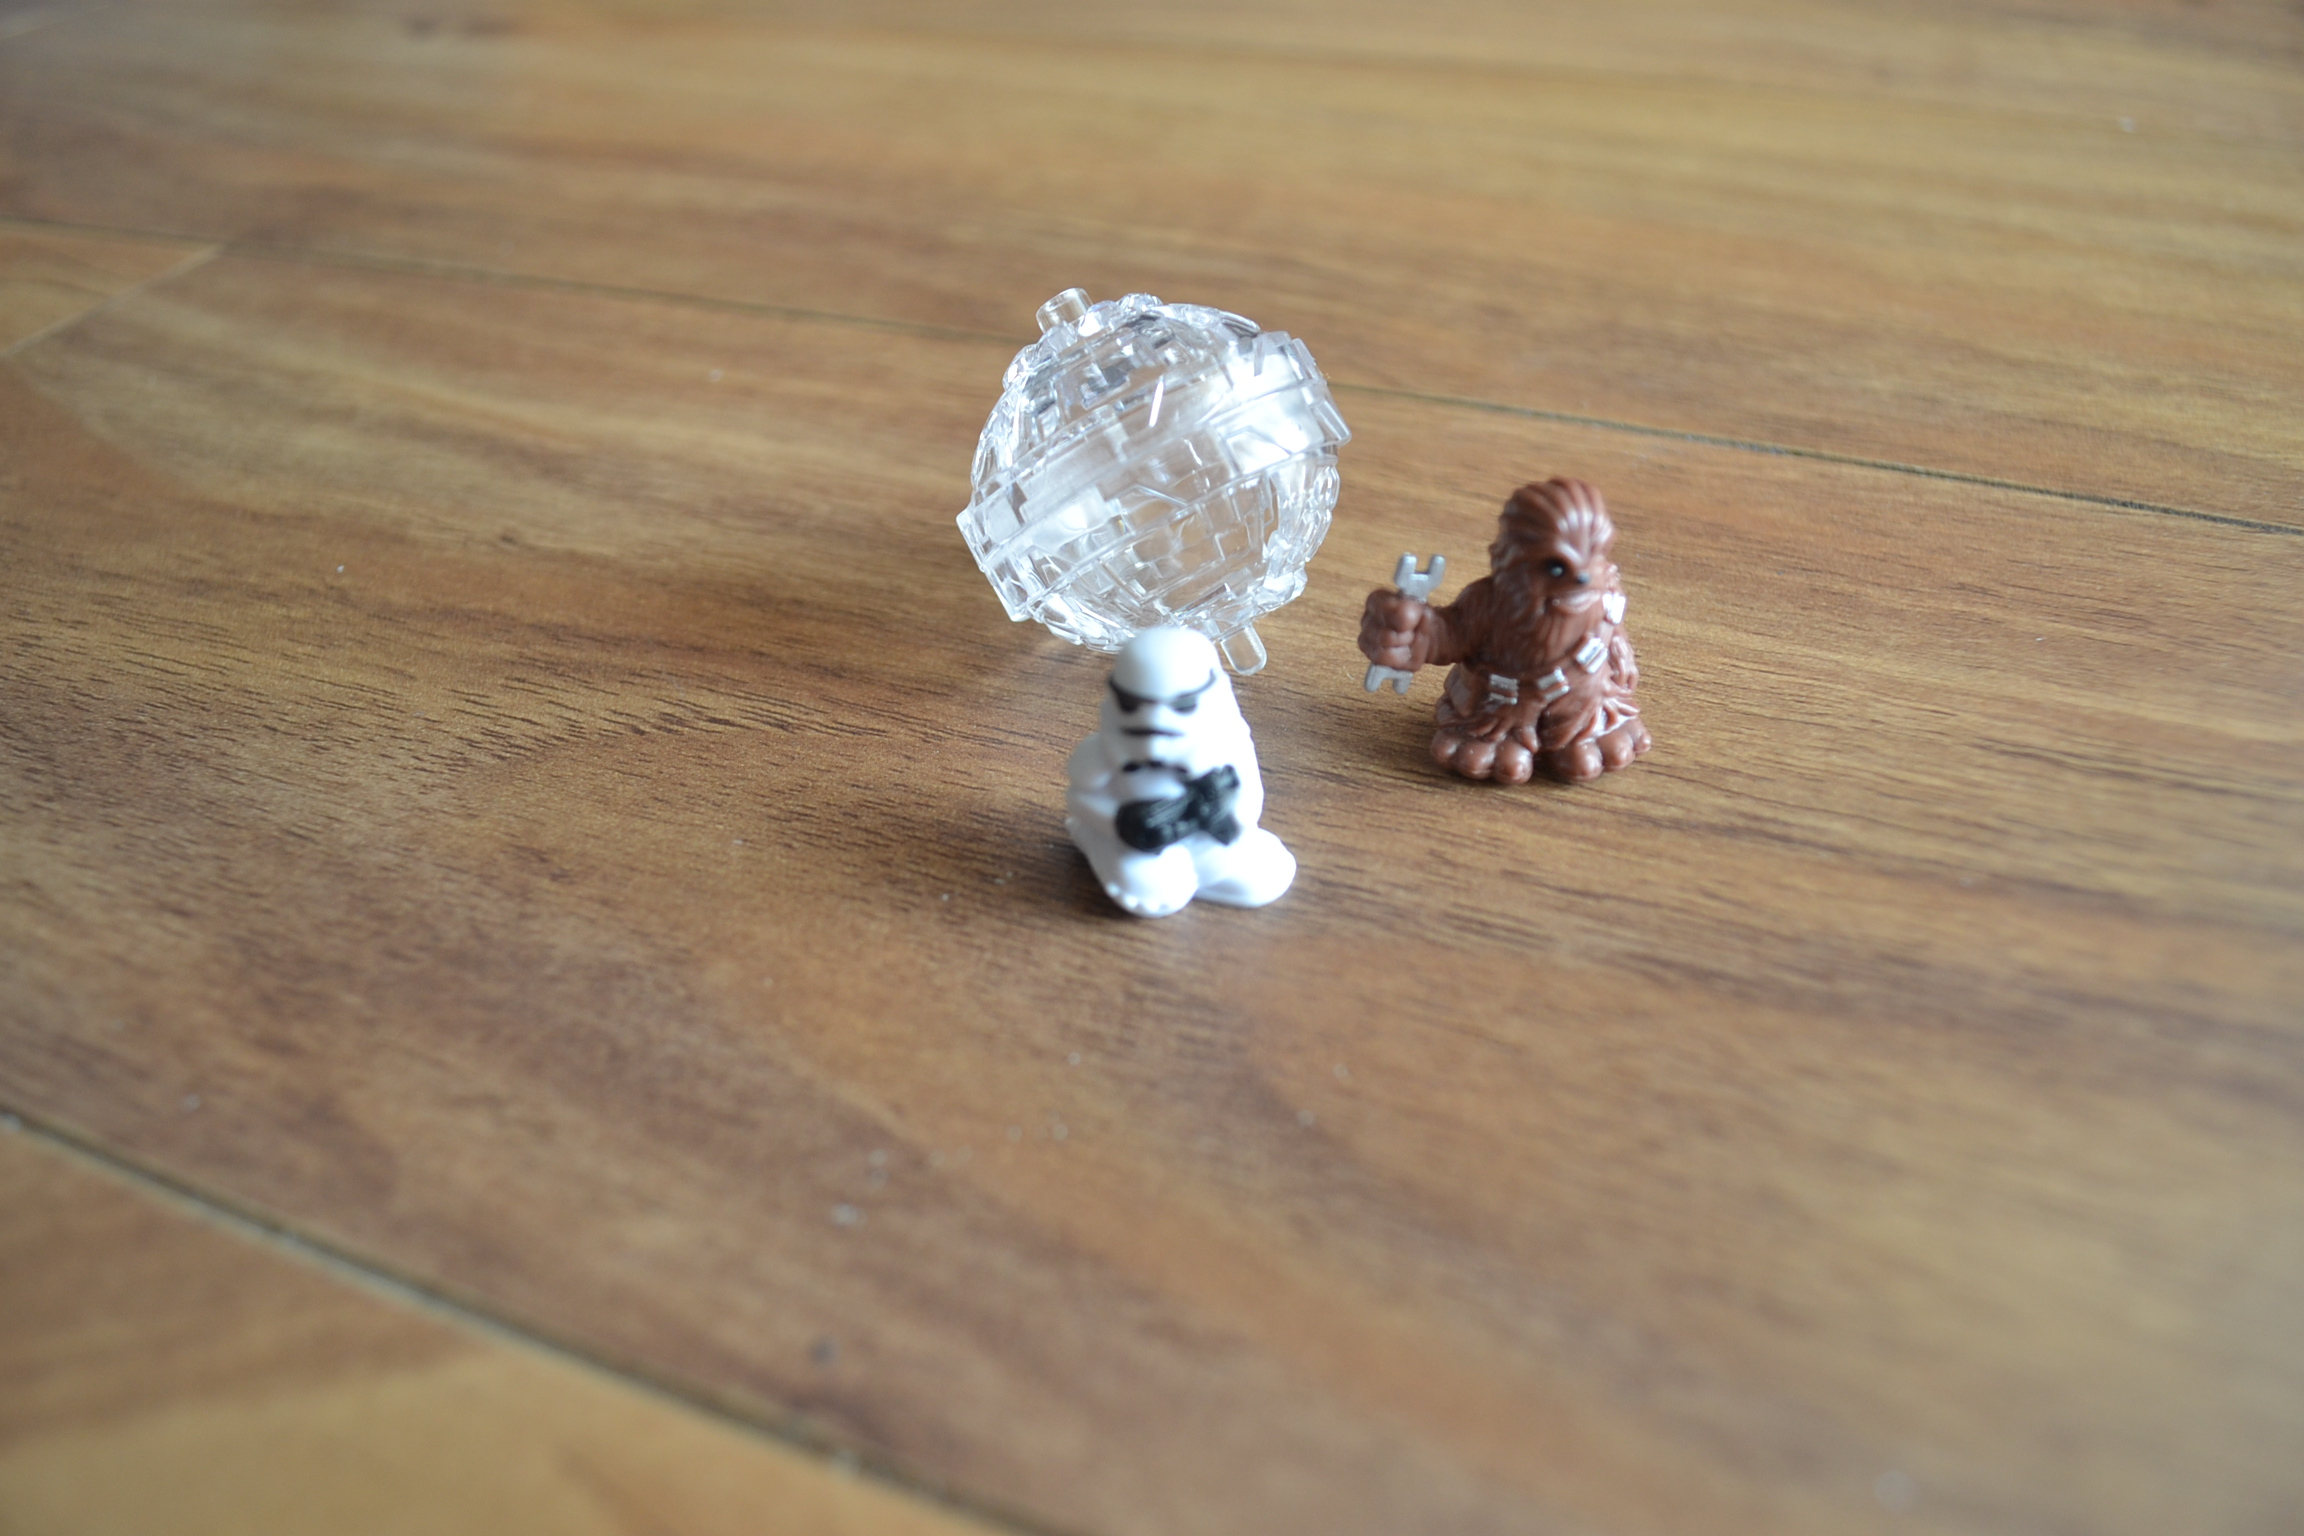 Star Wars Fighter Pods Series1 Review » Little Inspiration